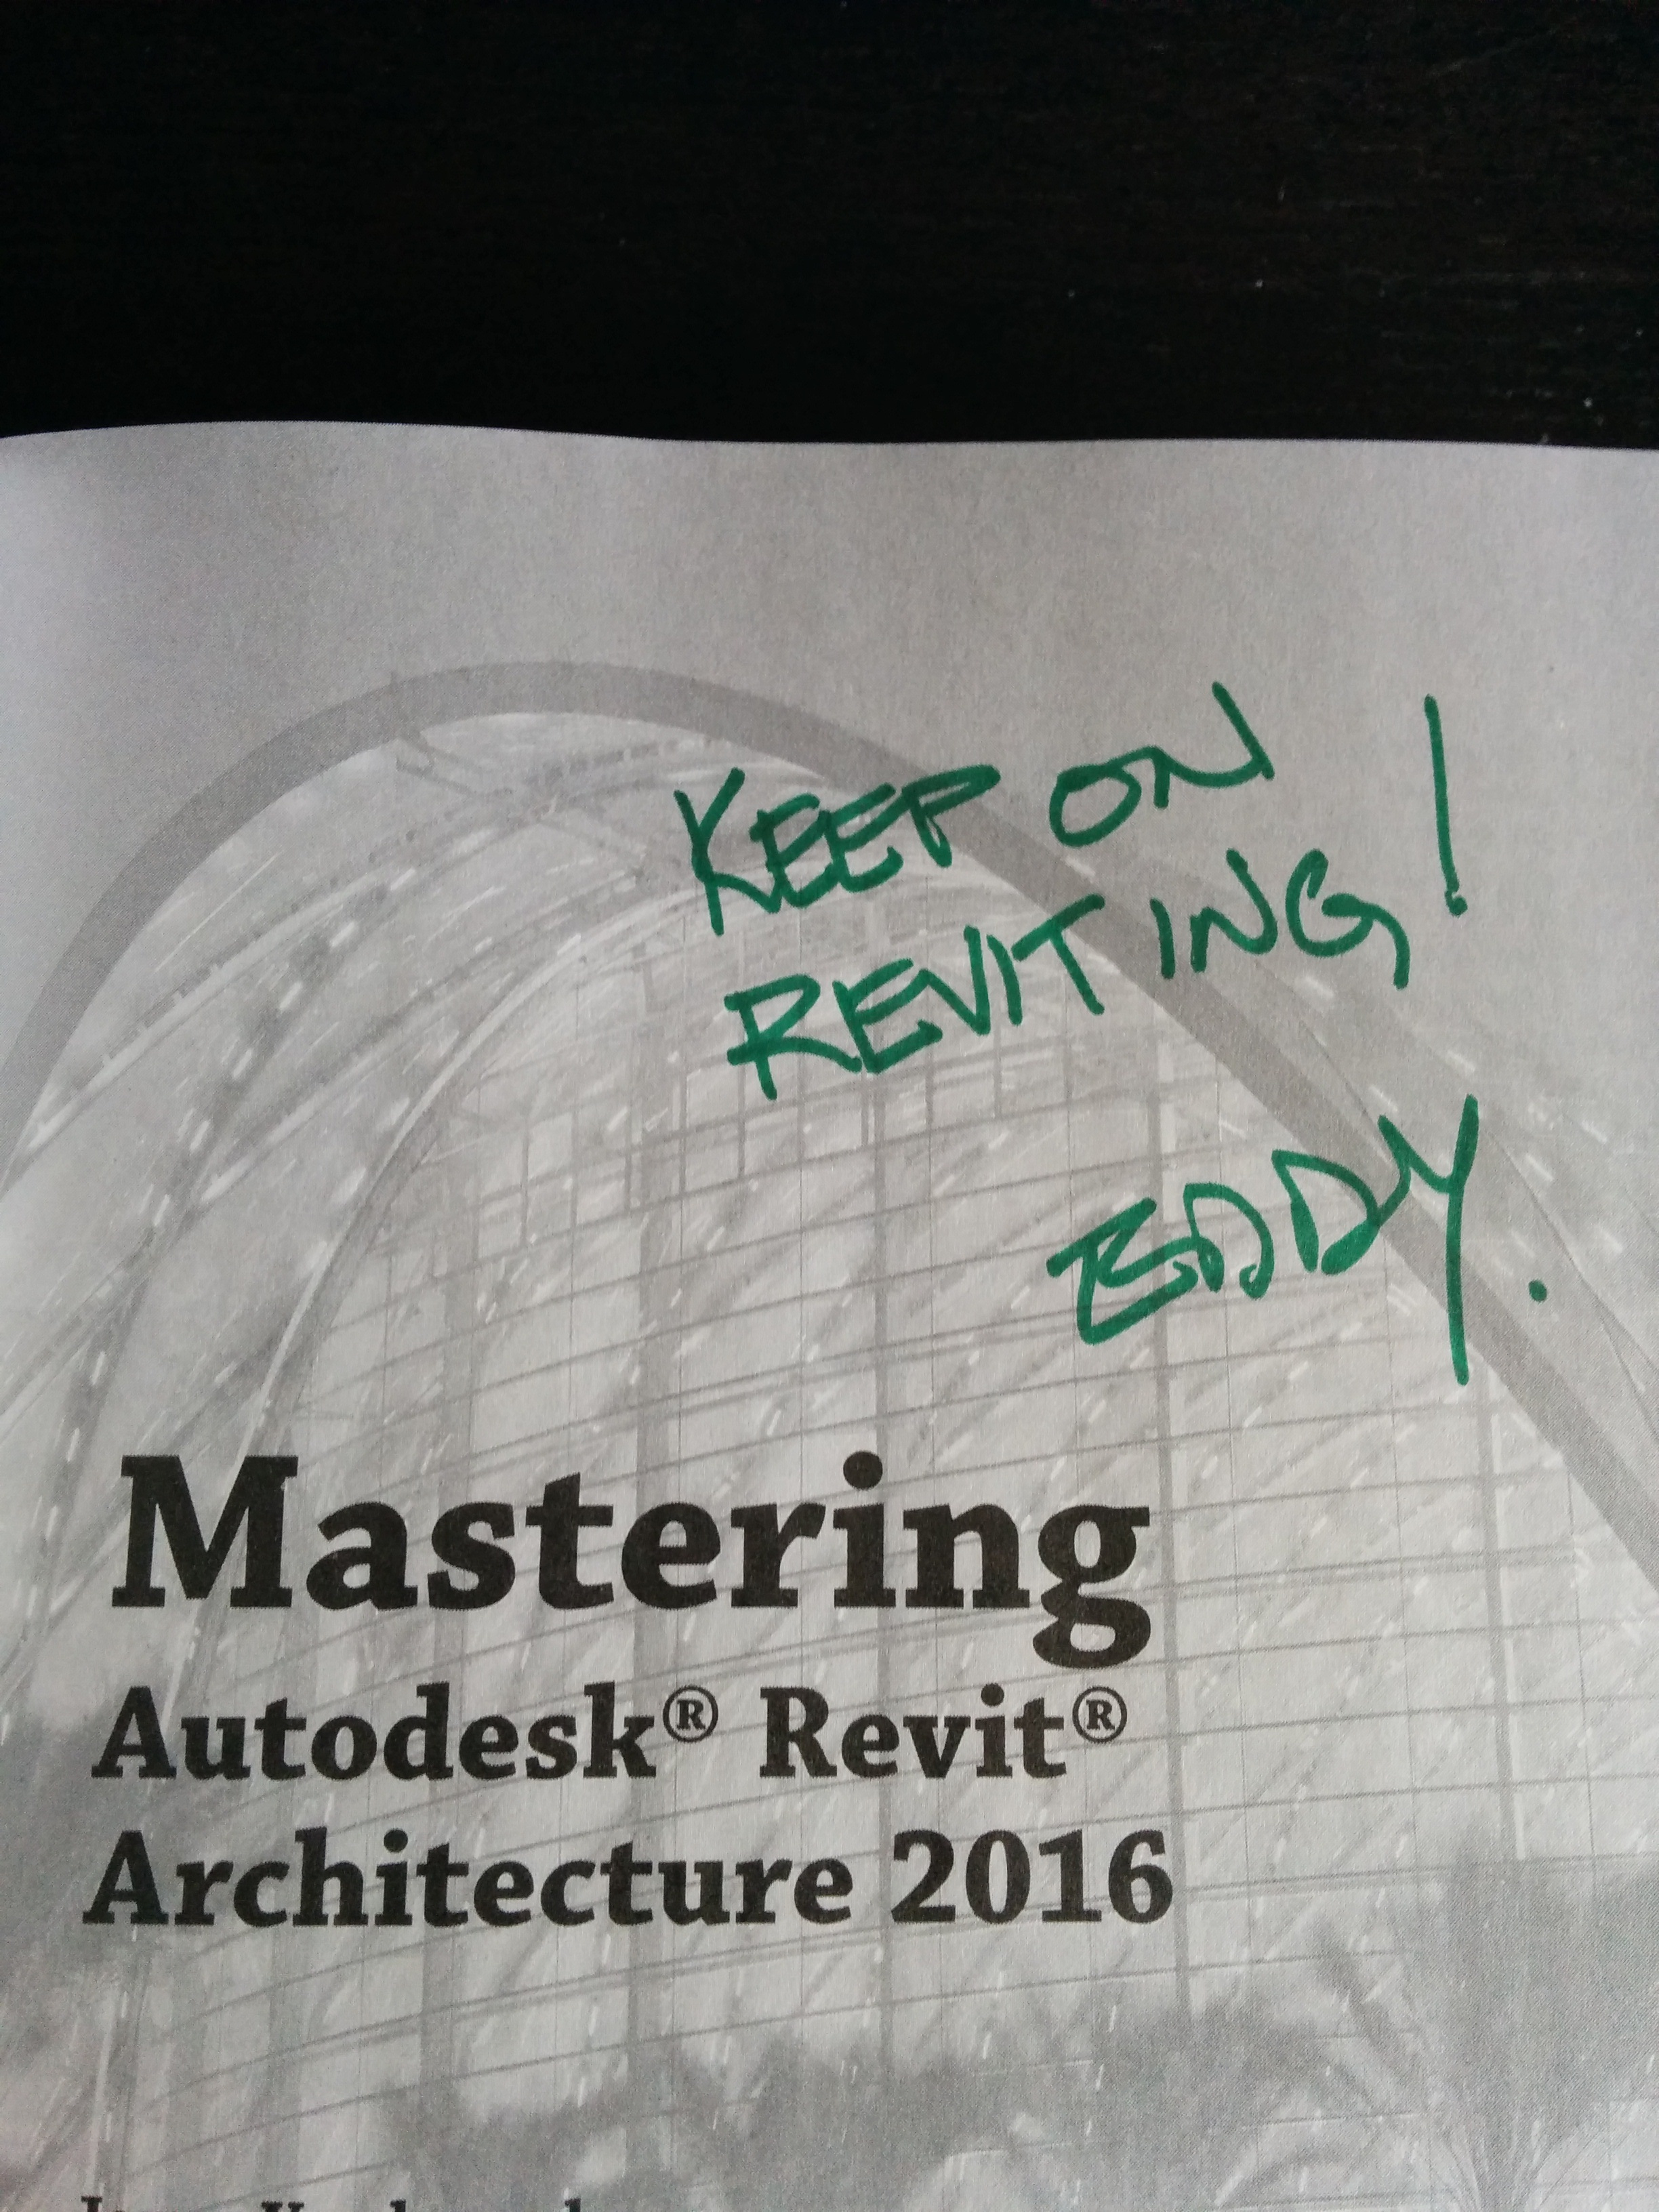 Mastering Autodesk Revit Architecture 2016 How The Love Affair